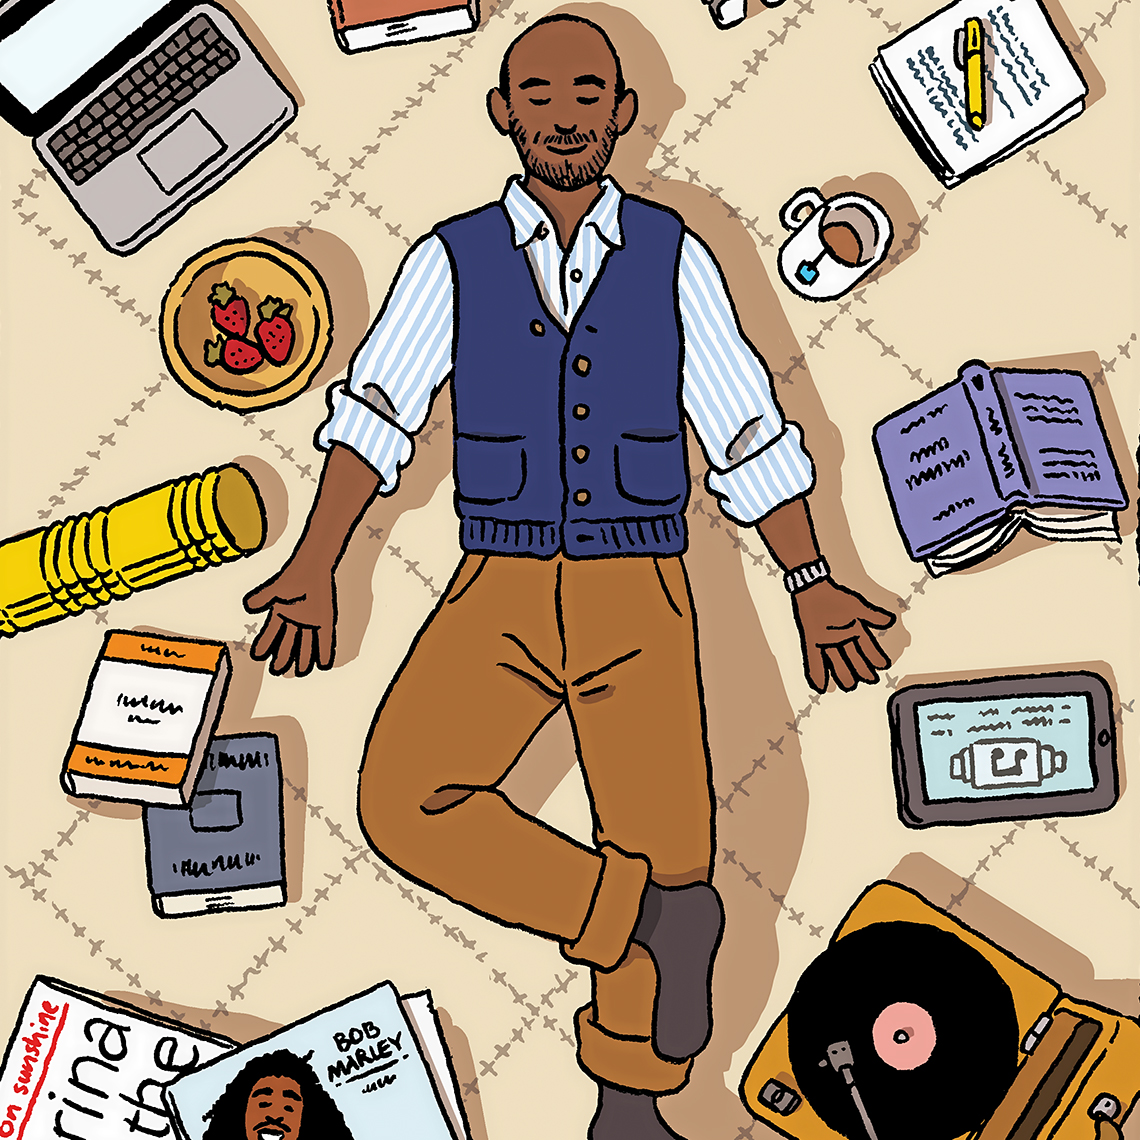 smiling man laying on floor listening to record player surrounded by book, tea, records, a dish or strawberries